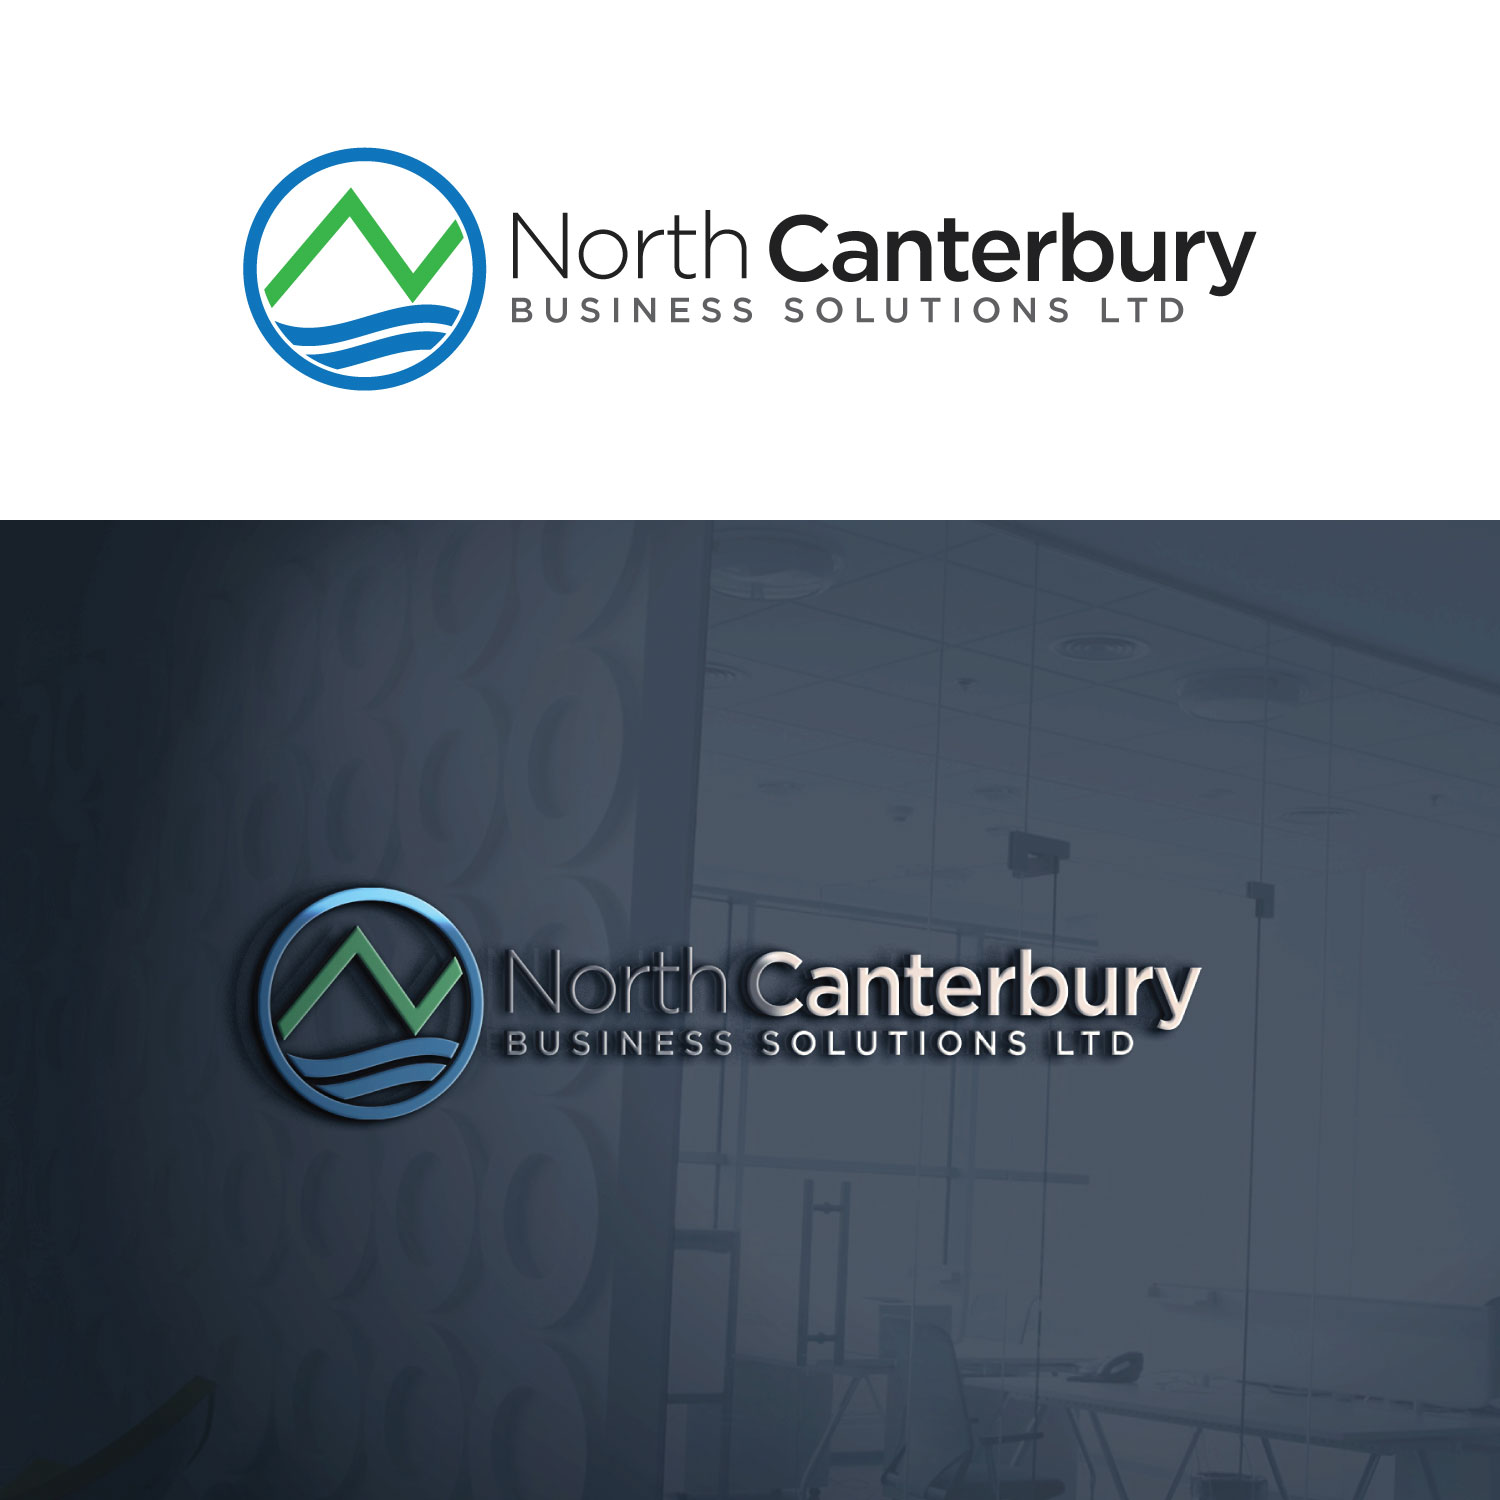 Modern Professional It Company Logo Design For Concept: Modern, Professional, Accountant Logo Design For North